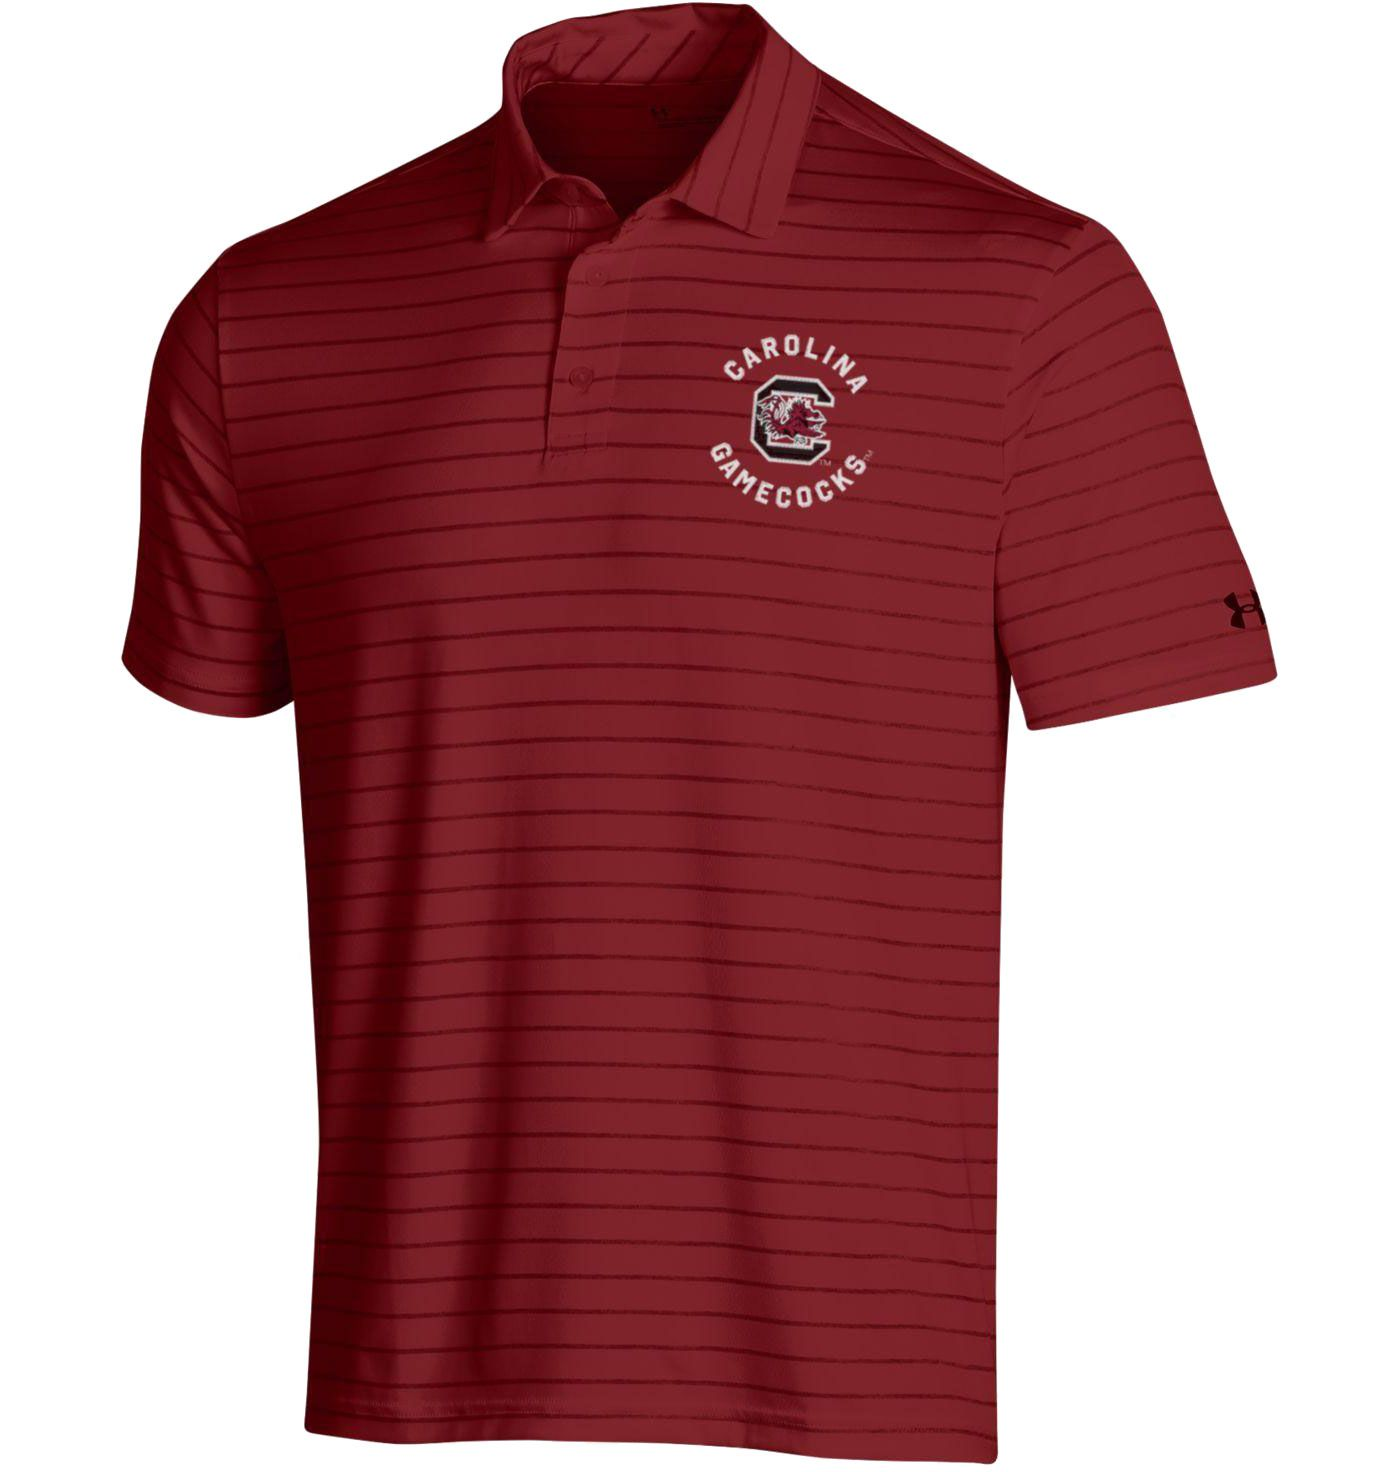 Under Armour Men's South Carolina Gamecocks Garnet Playoff Tour Striped Polo